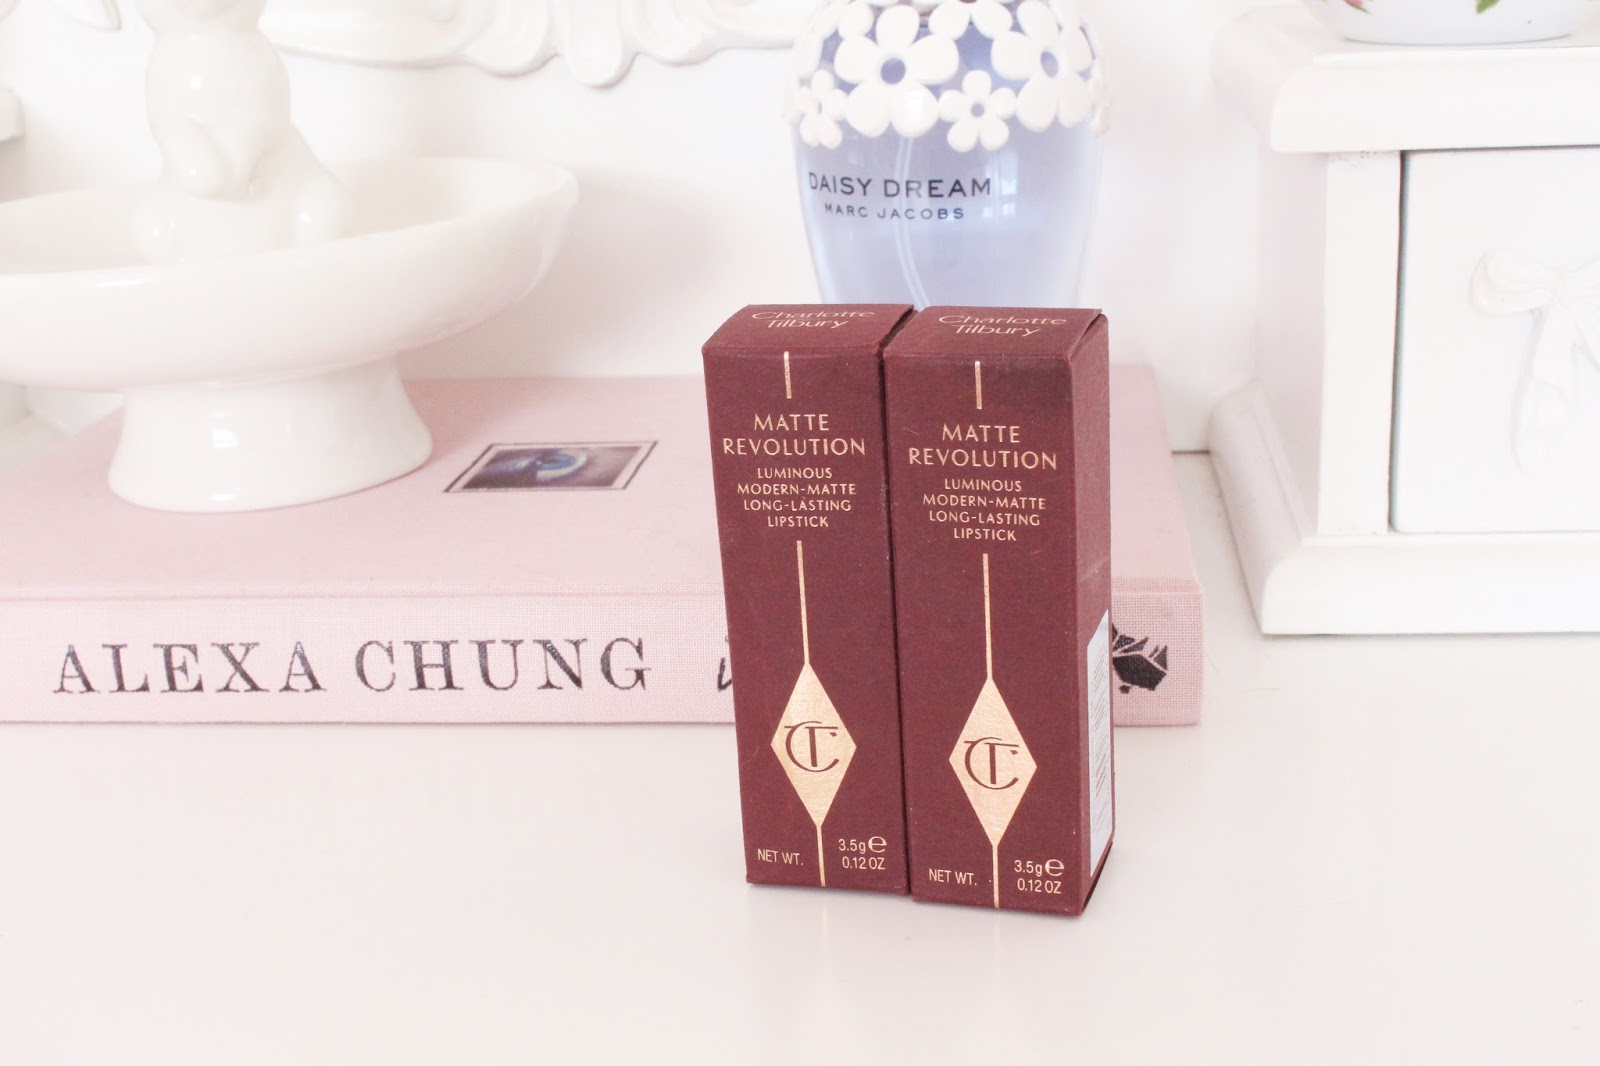 Charlotte Tilbury Matte Revolution Lipsticks Blog Review